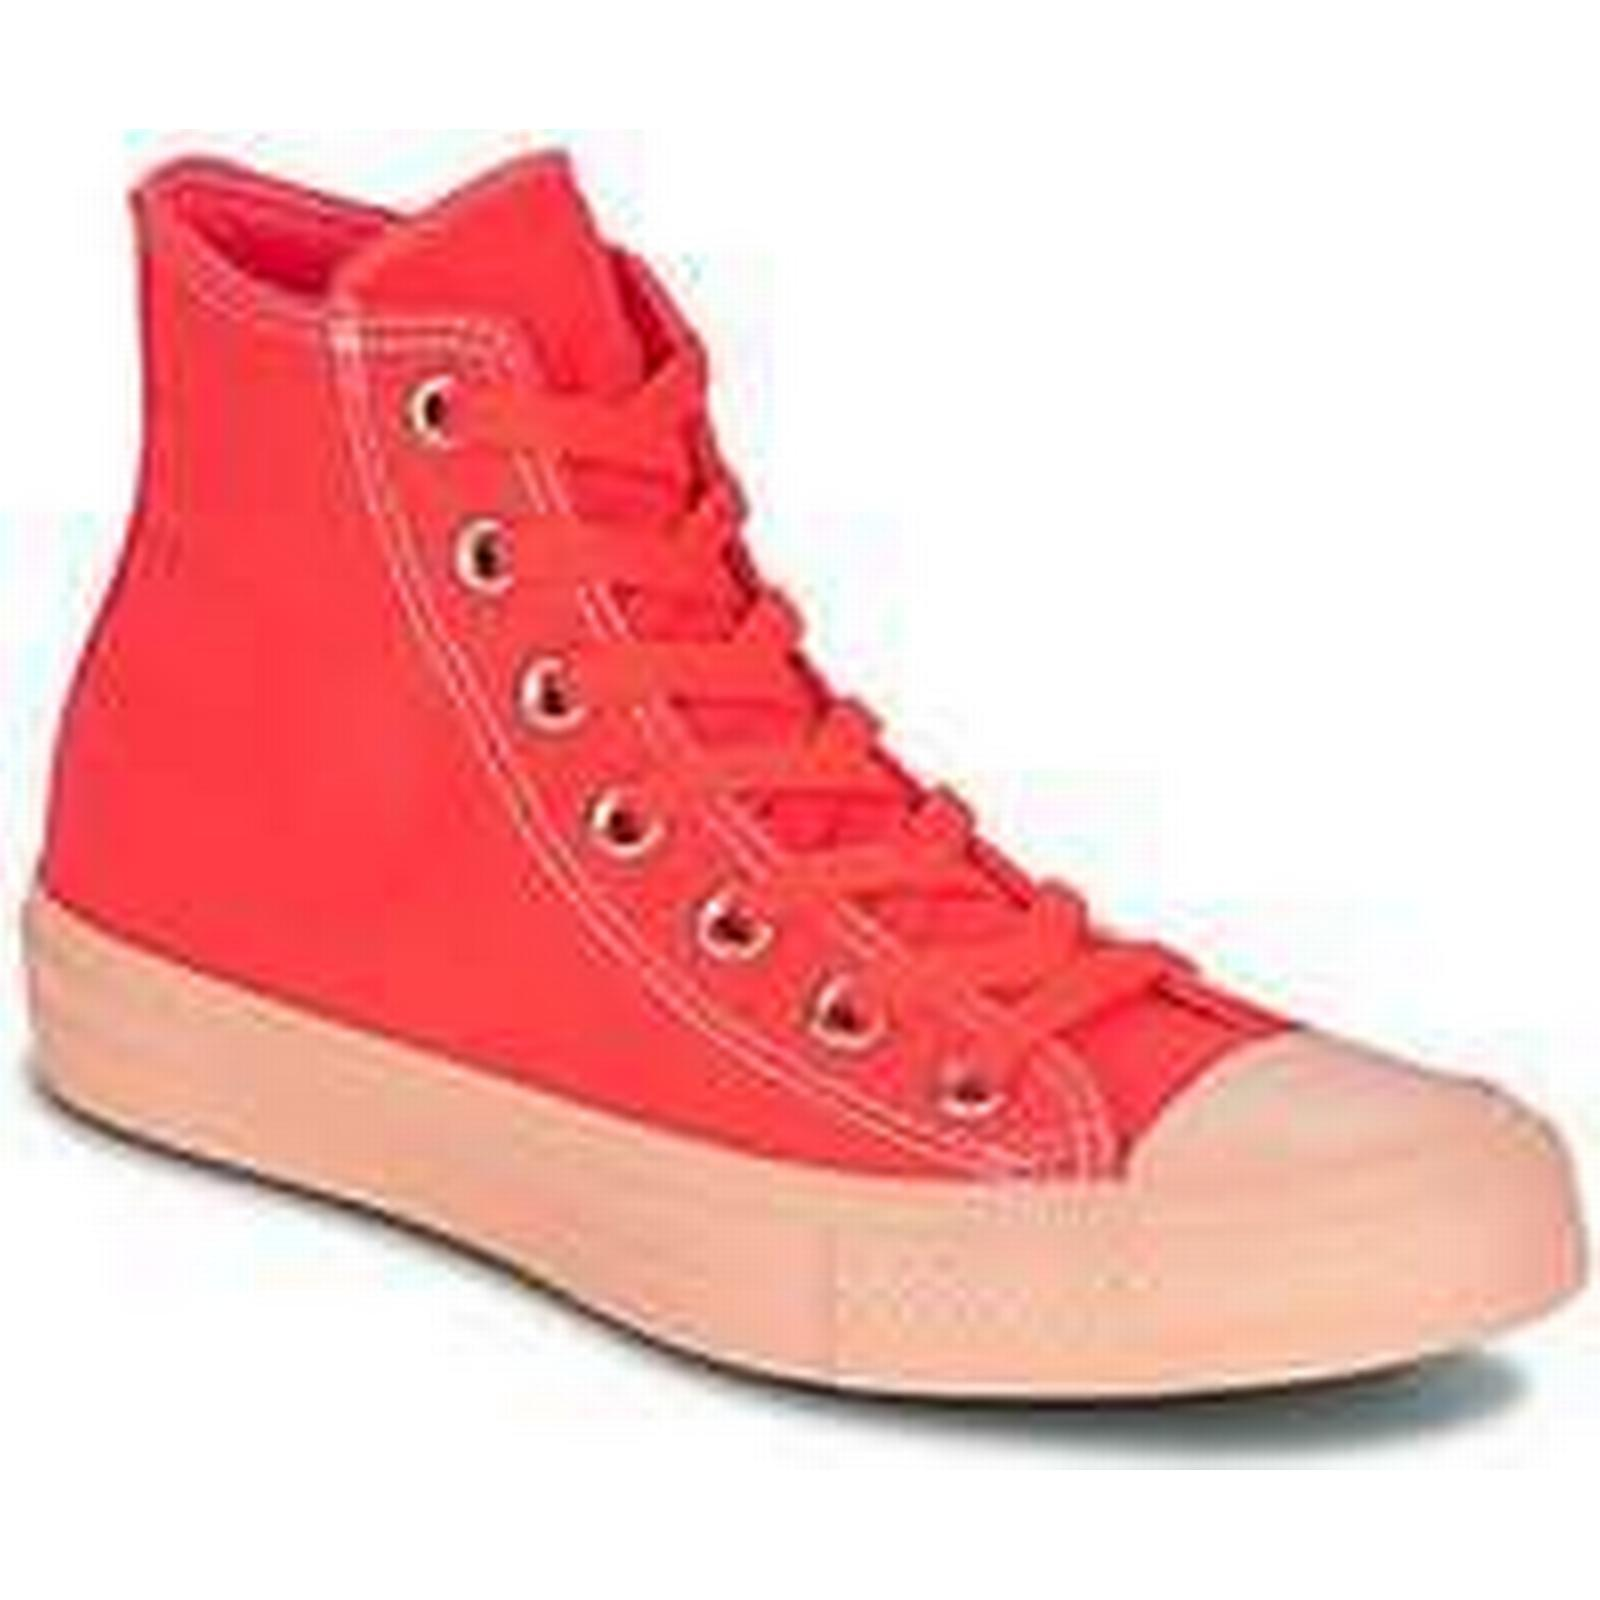 fe3ea41f3761 ... netherlands spartoo converse chuck taylor all star ii pastel midsoles  hi in womens shoes high top